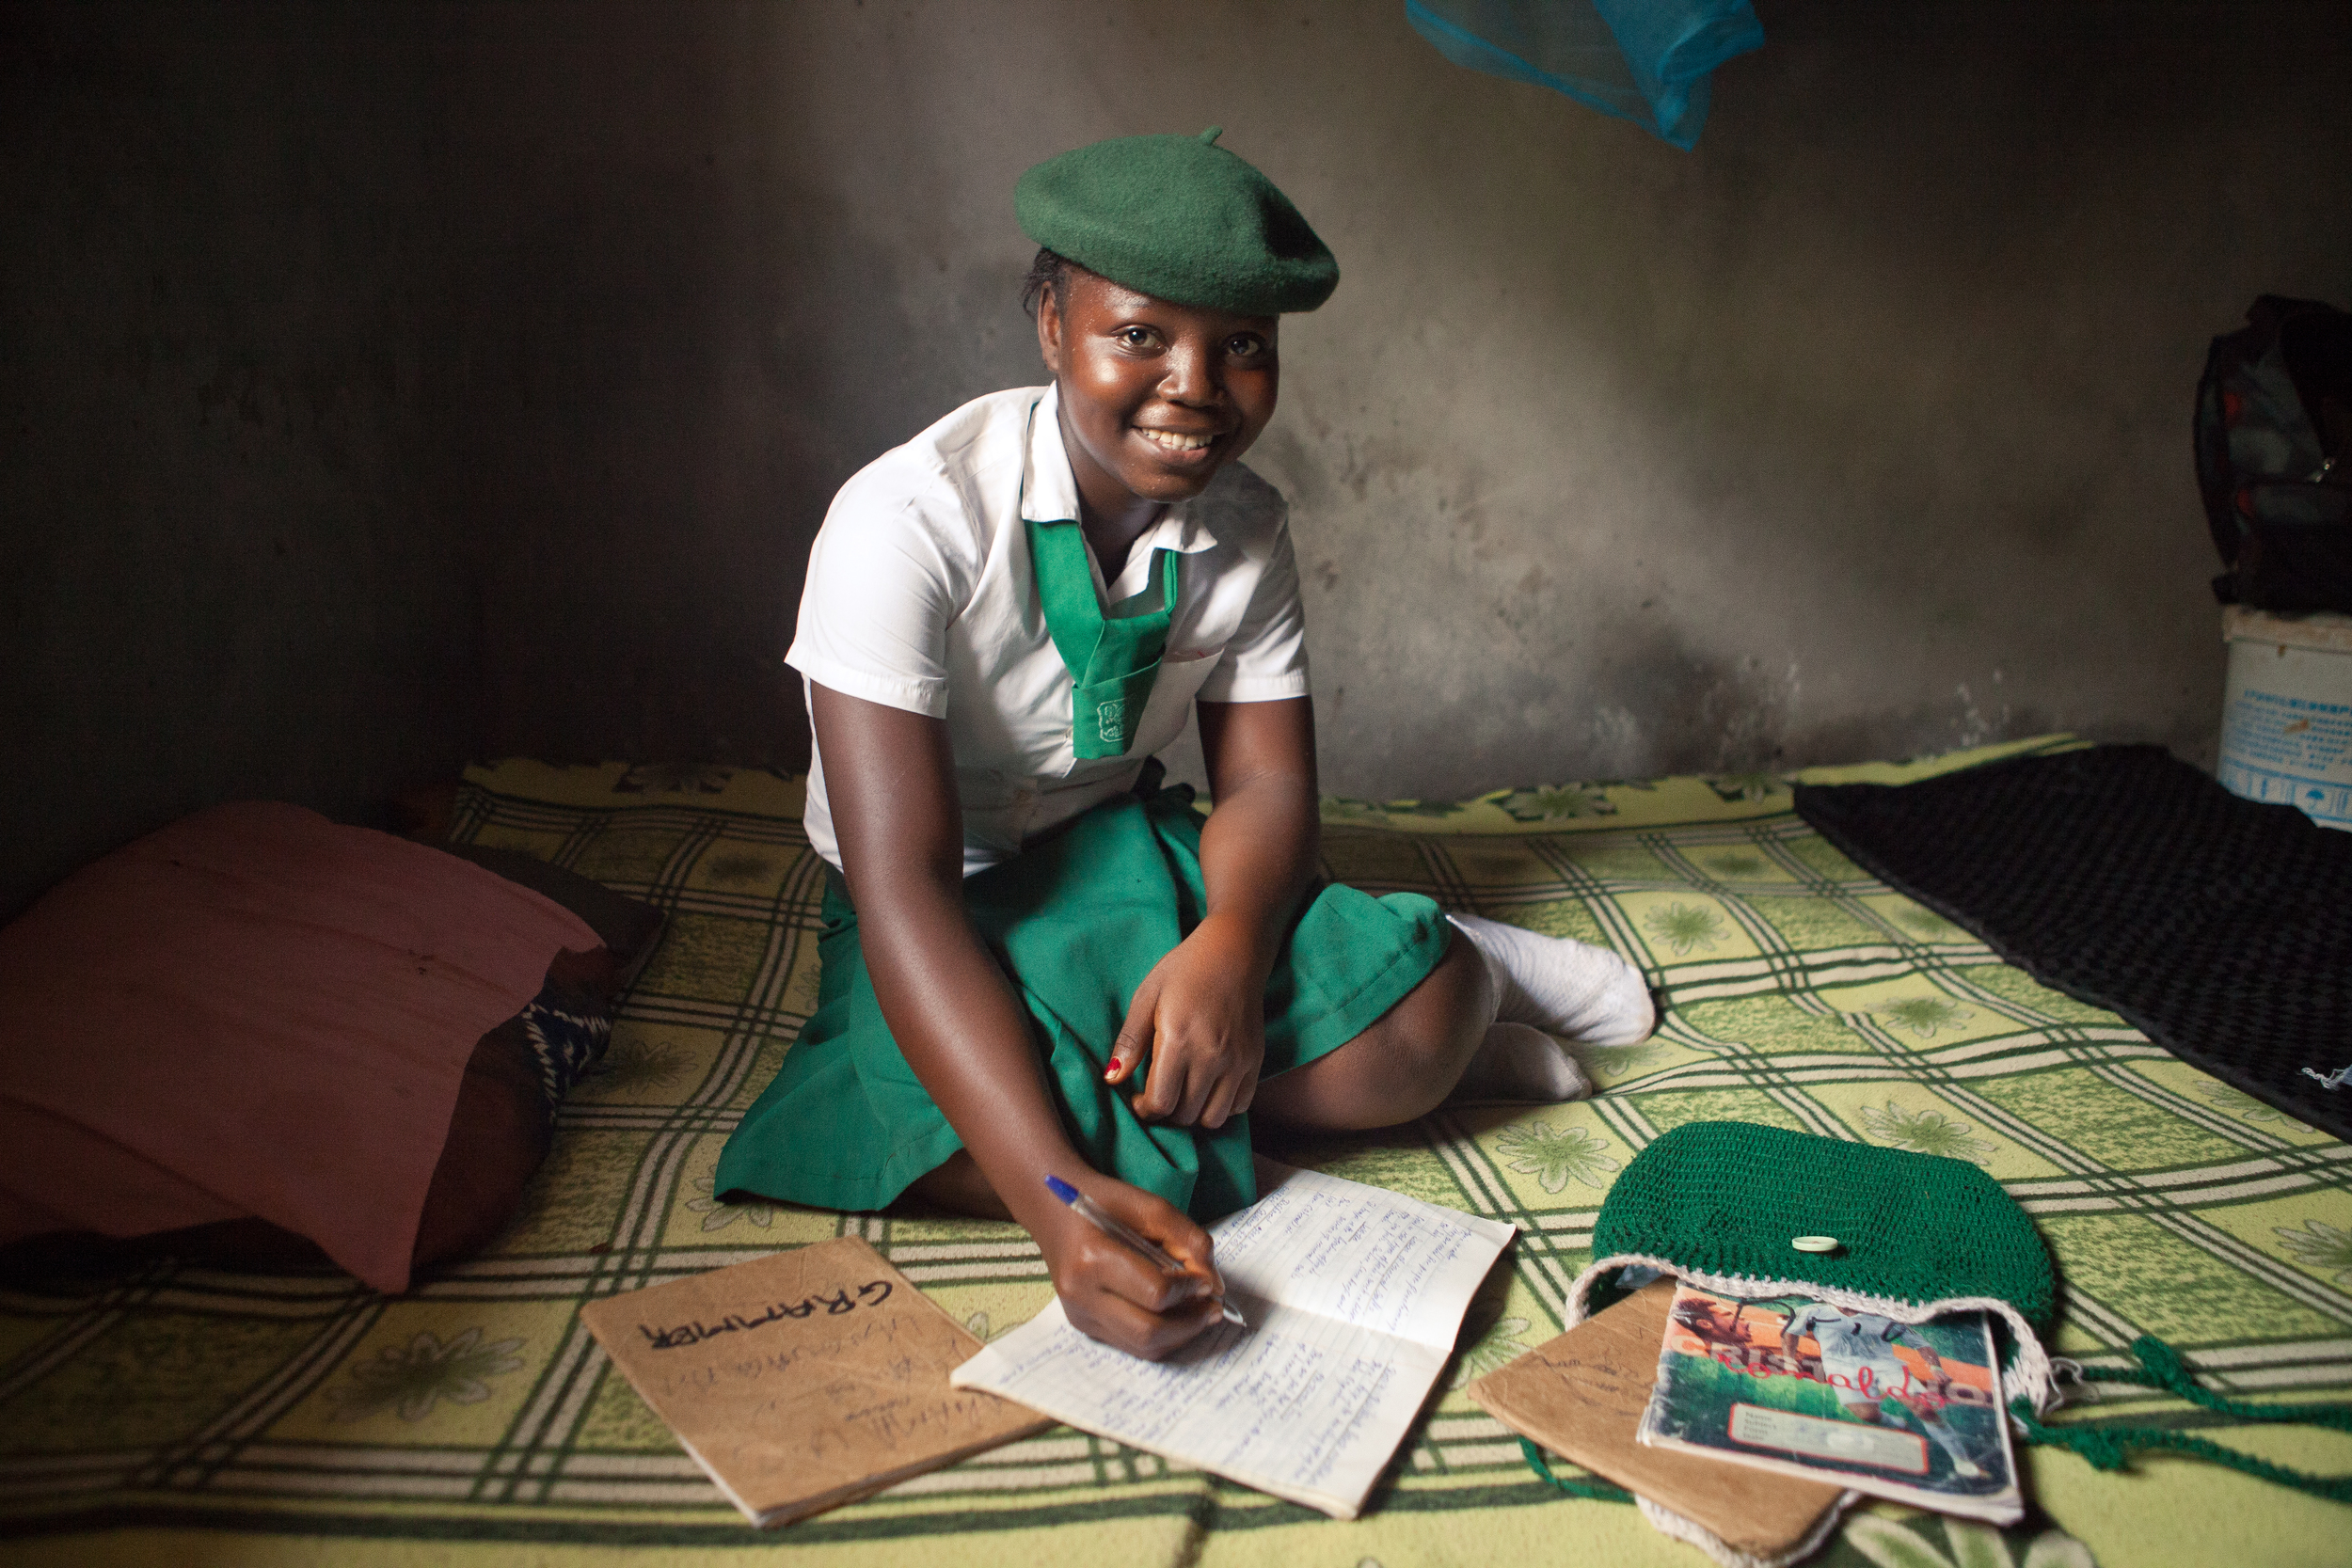 Mariama, 14, does homework in her room. She's the oldest sibling and helps her younger brother and sister with their schoolwork.